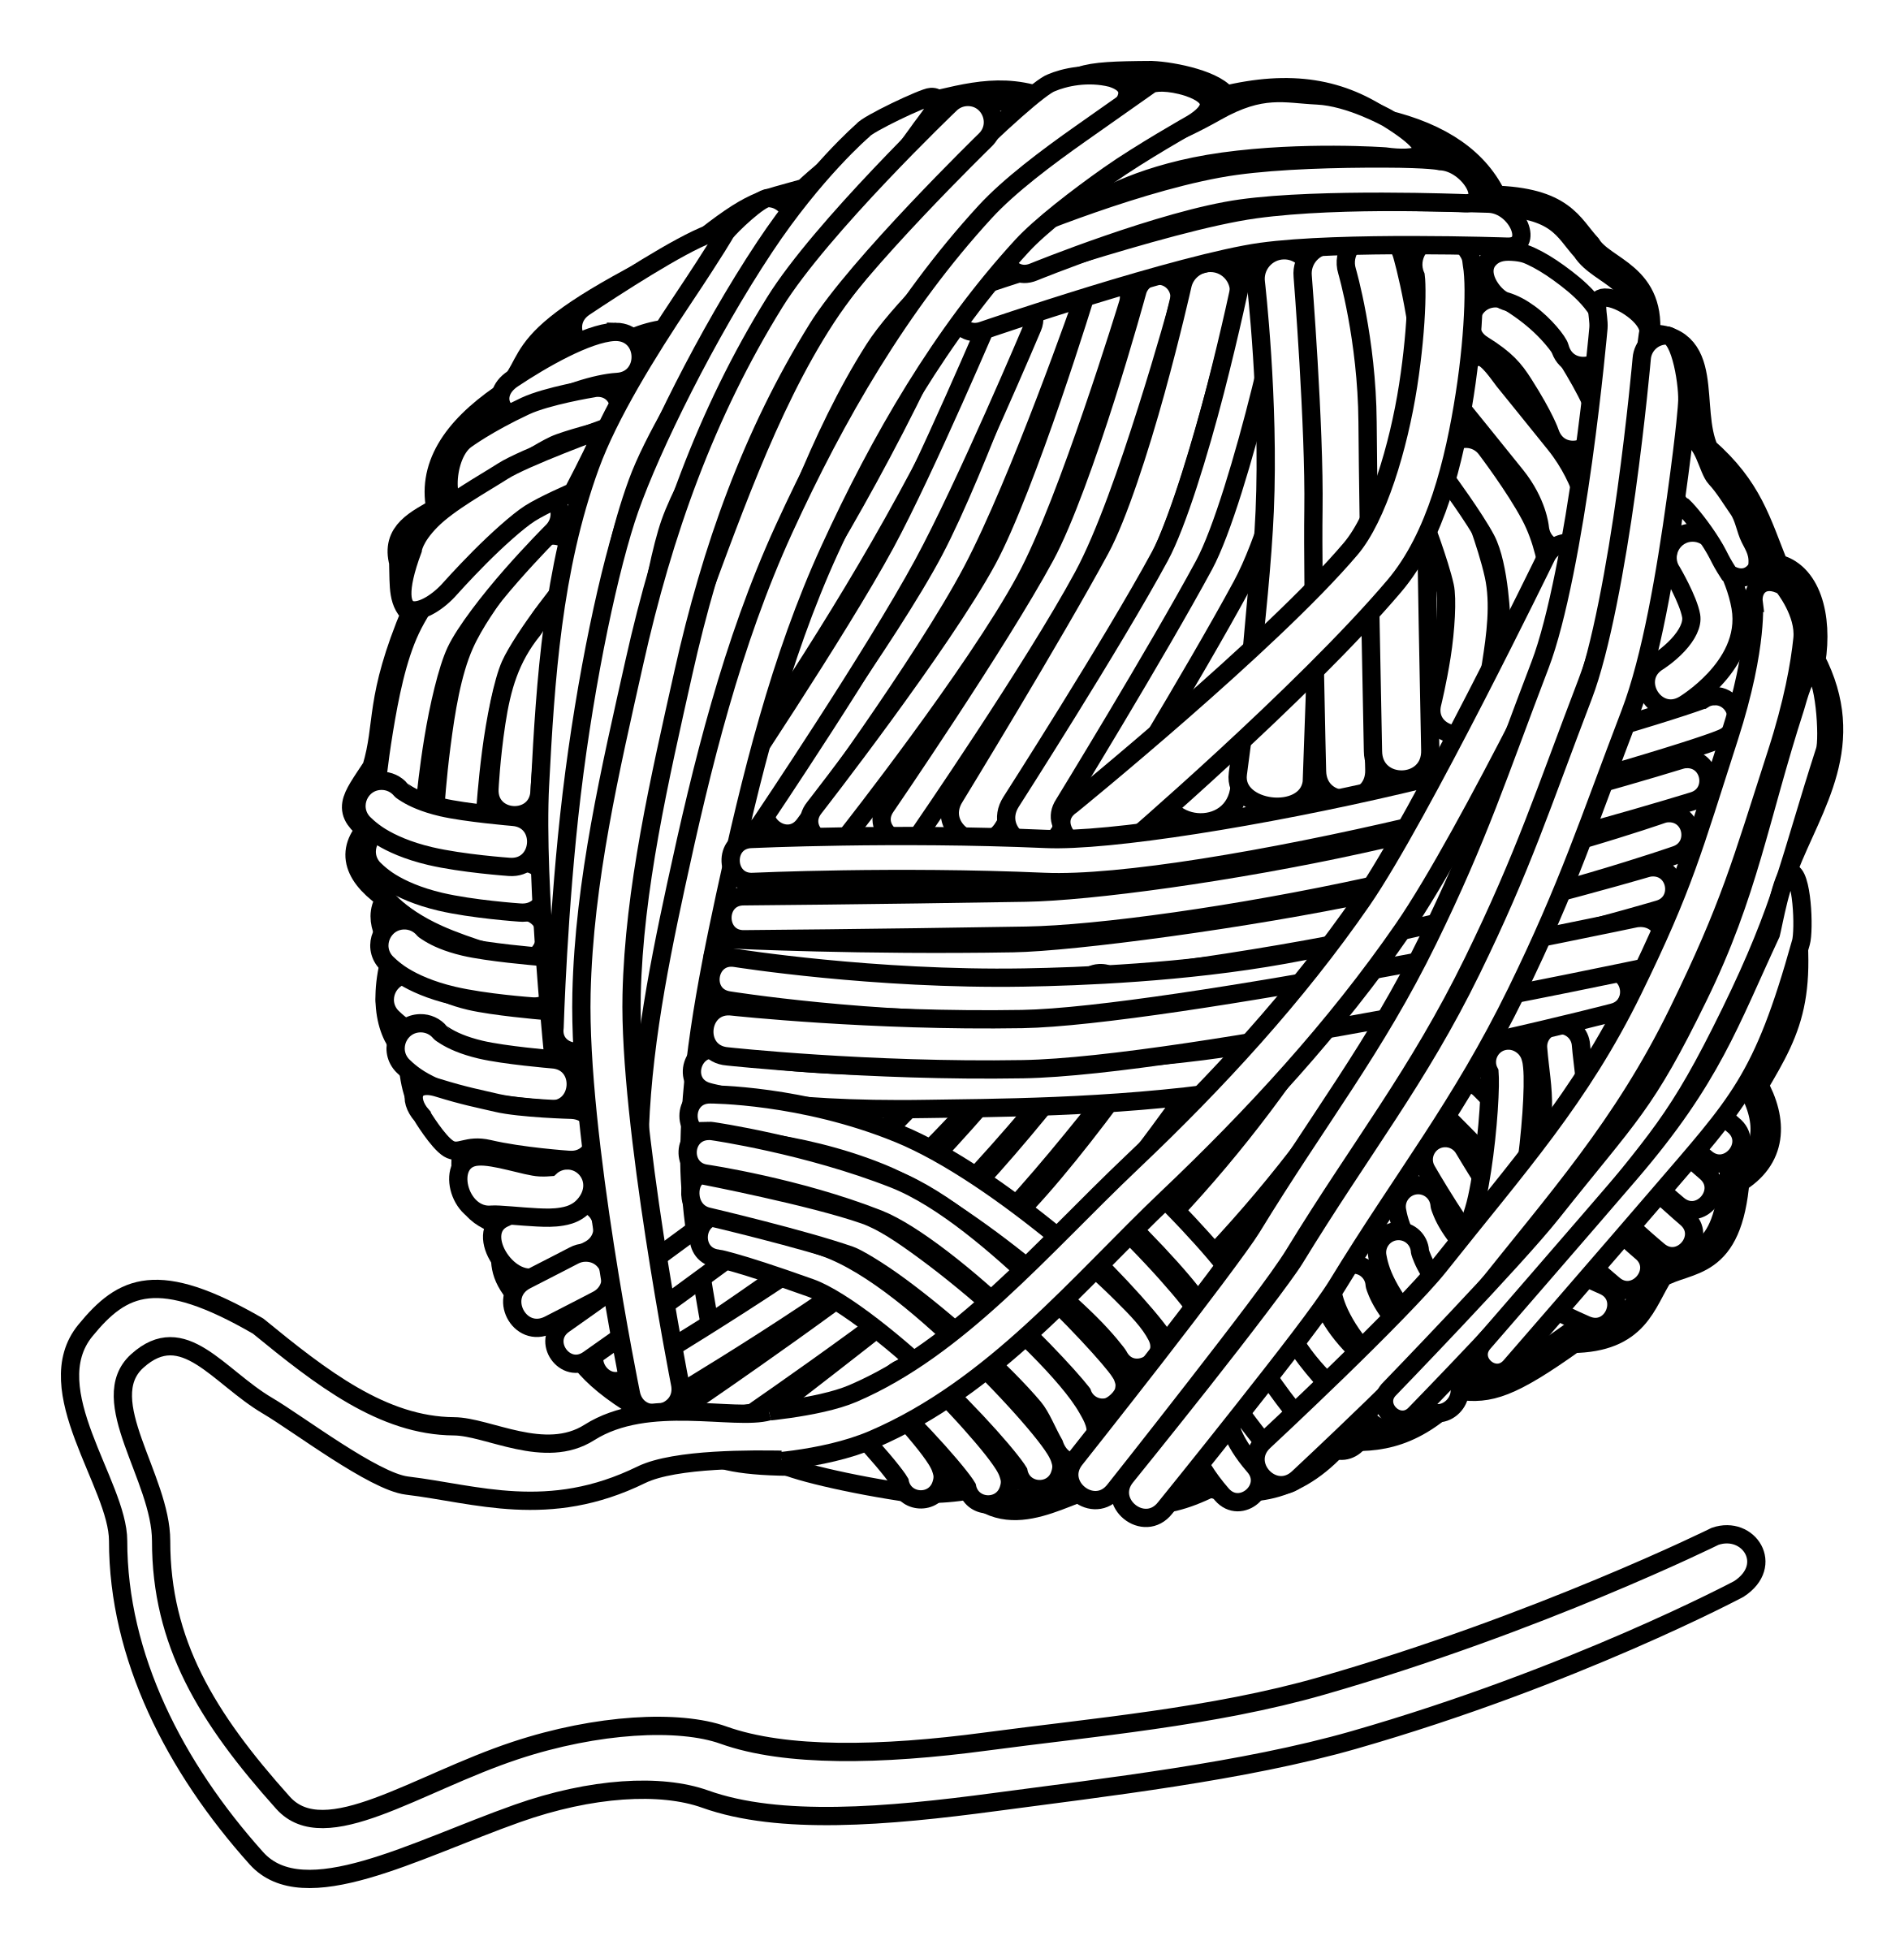 Yarn clipart. Wool free cliparts download